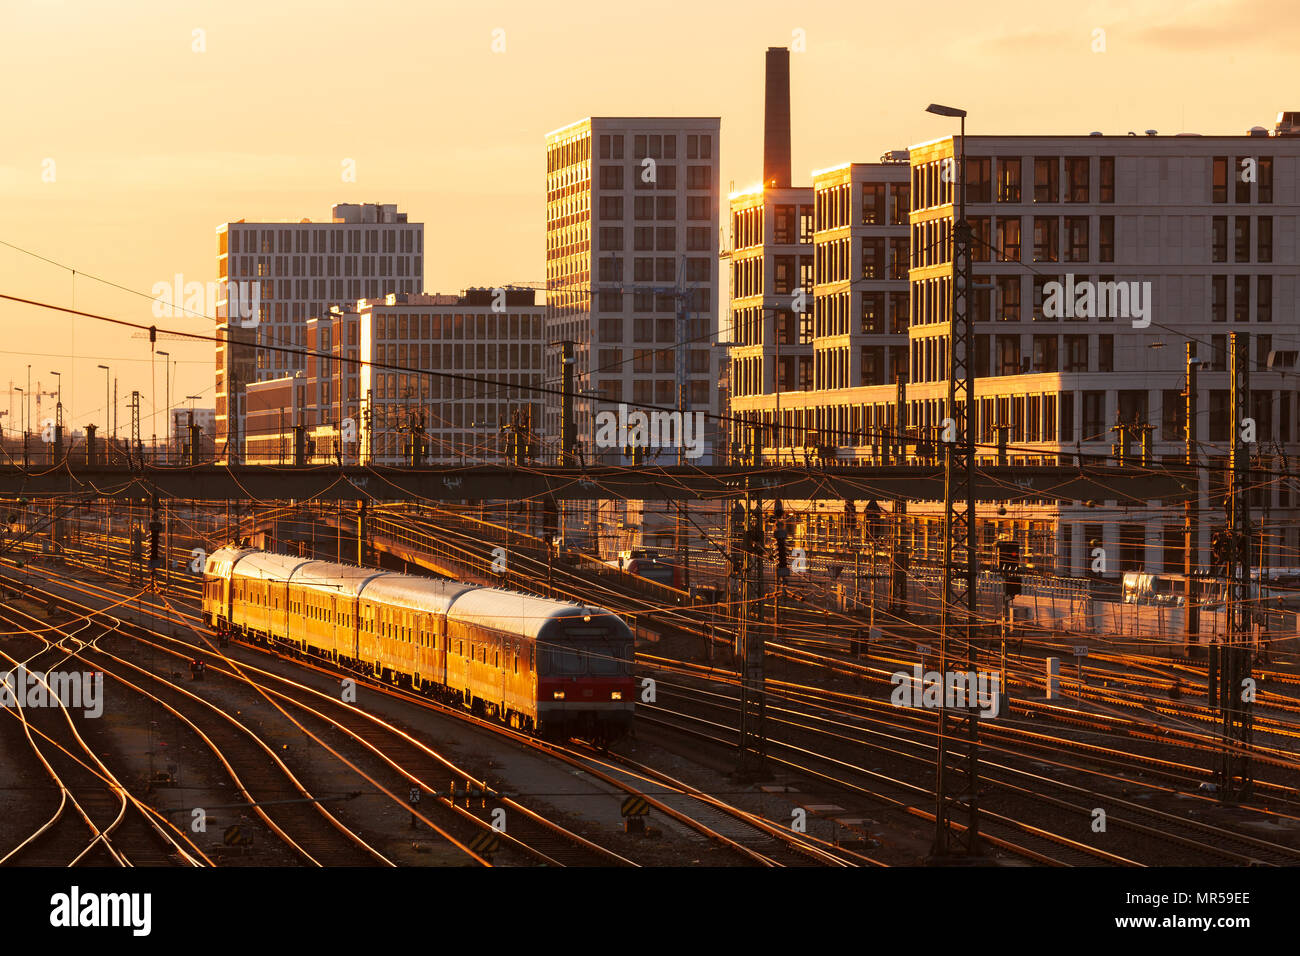 MUNICH / GERMANY: Track field of Munich Main Station with modern buildings in the background and a train in the foreground - Stock Image